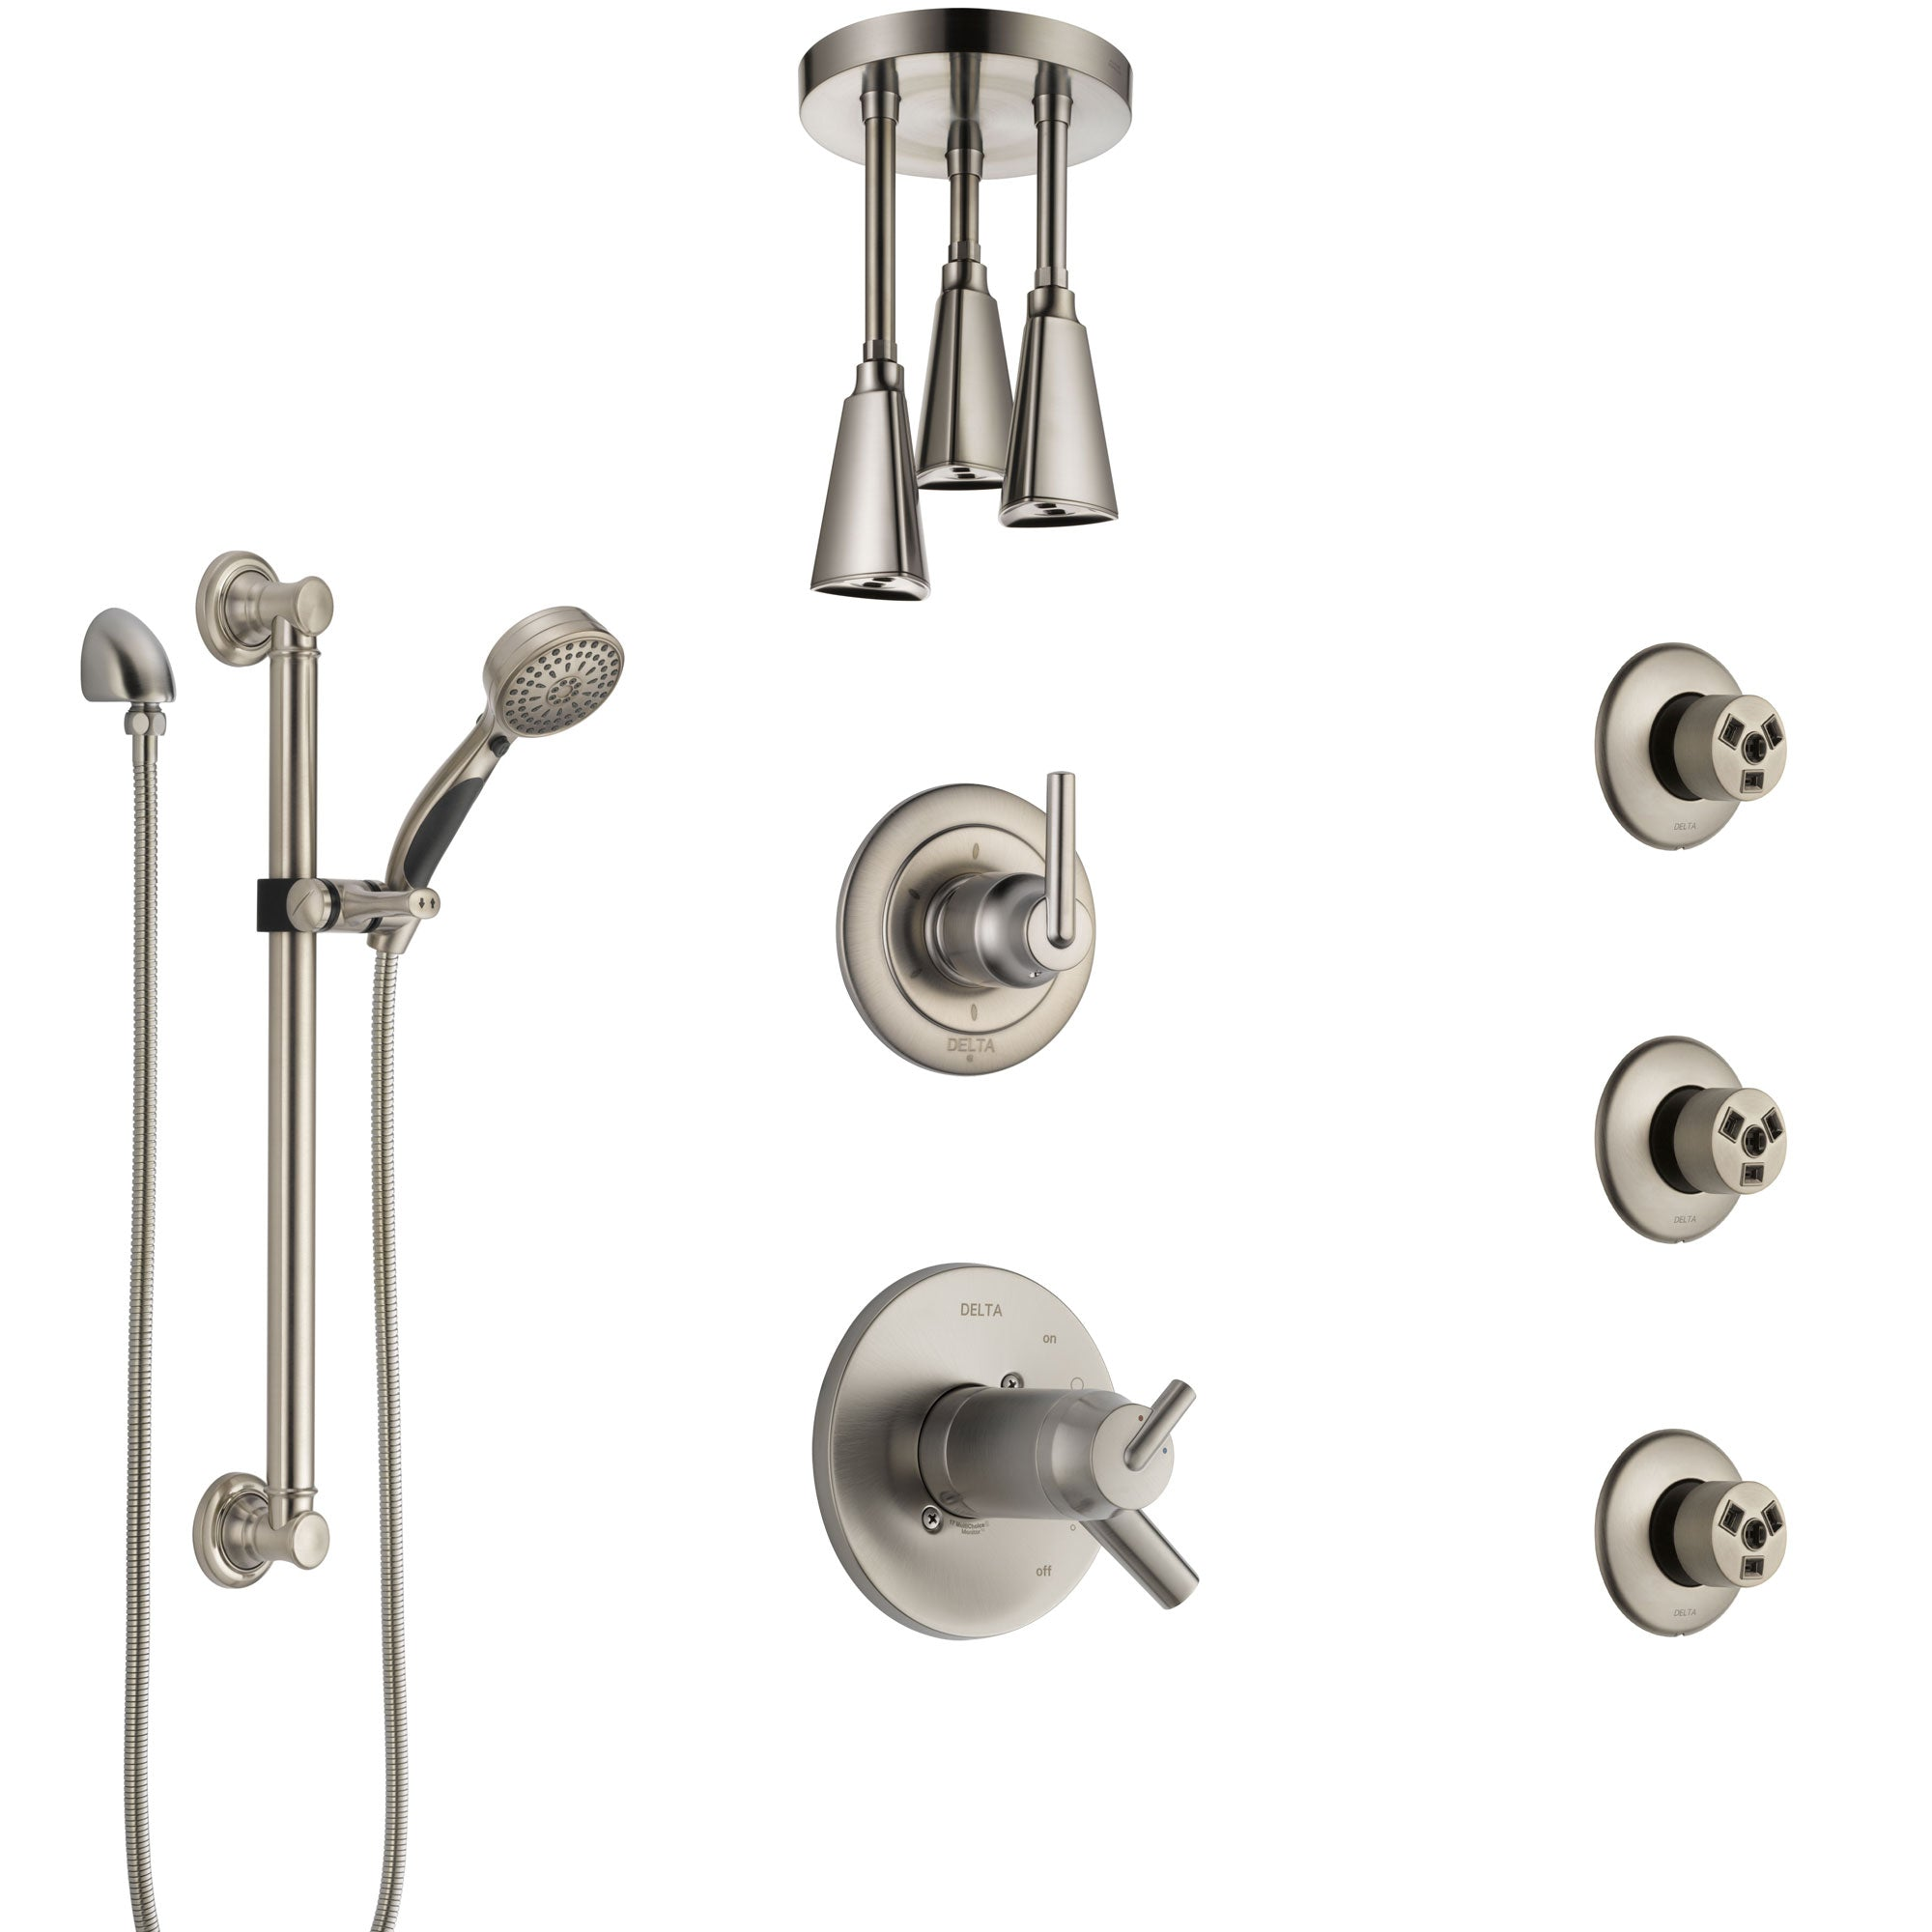 Delta Trinsic Dual Thermostatic Control Stainless Steel Finish Shower System with Ceiling Showerhead, 3 Body Jets, Grab Bar Hand Spray SS17T591SS4